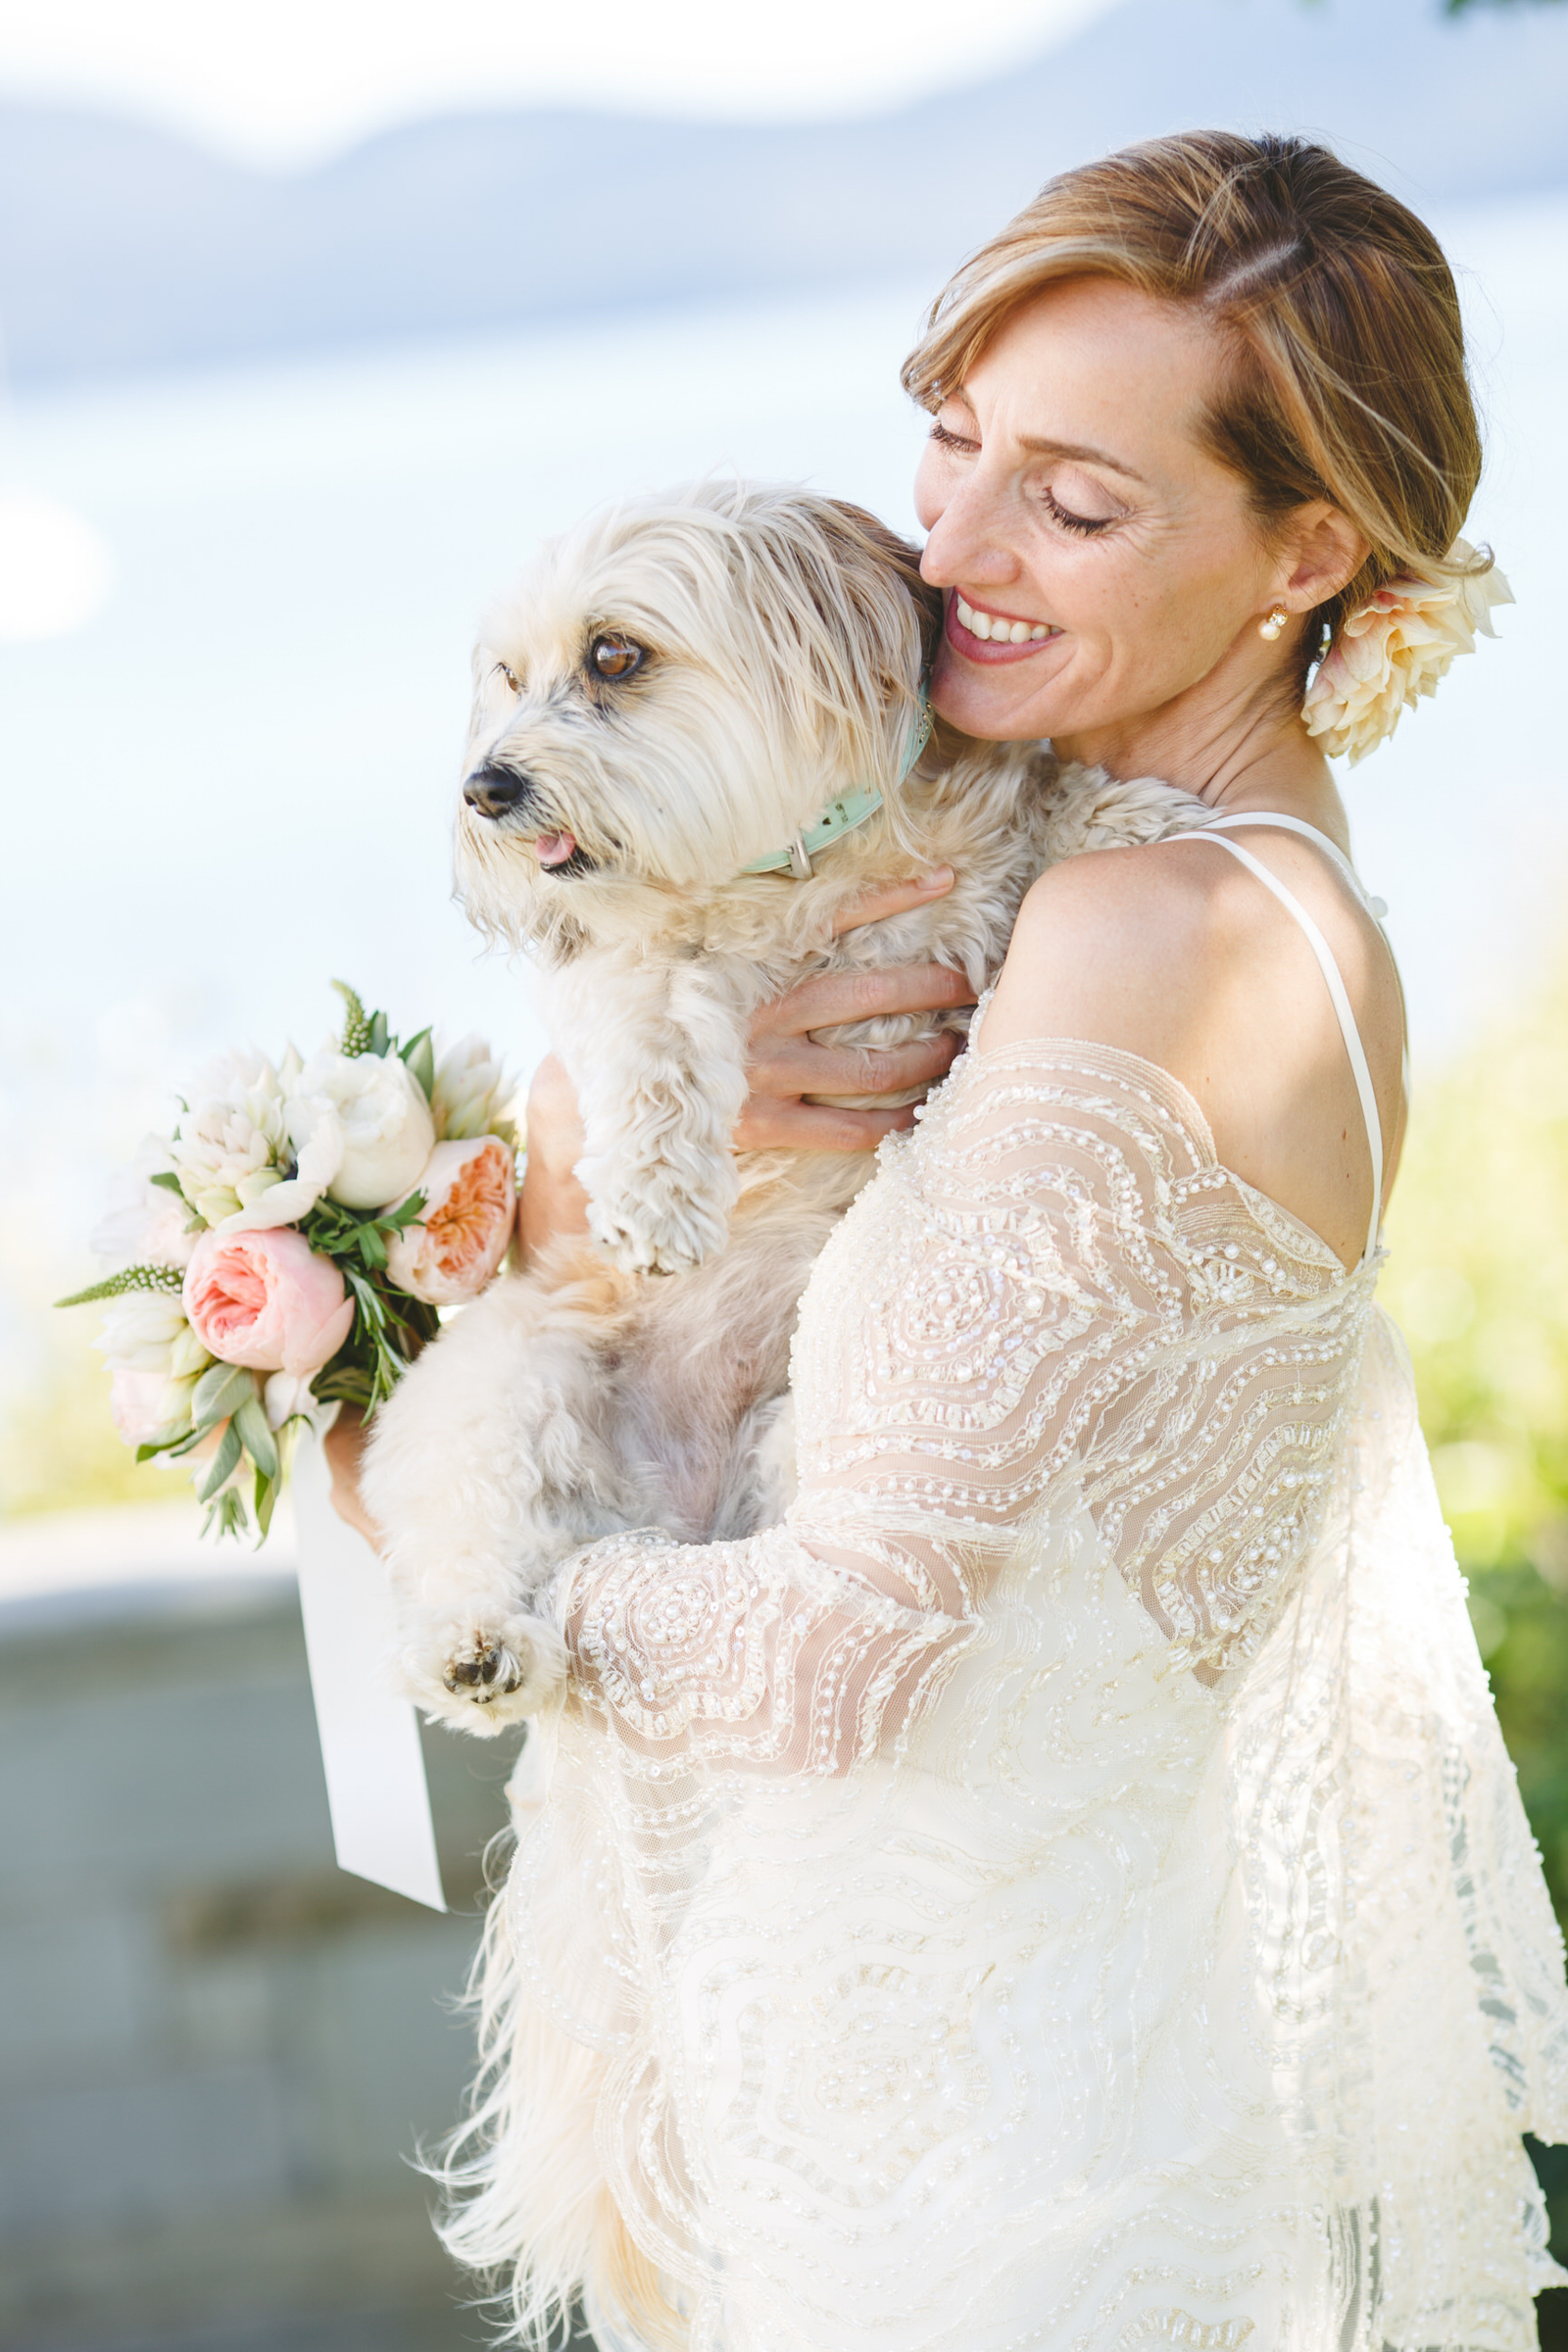 Bride holding fluffy white dog - photo by Satya Curcio Photography